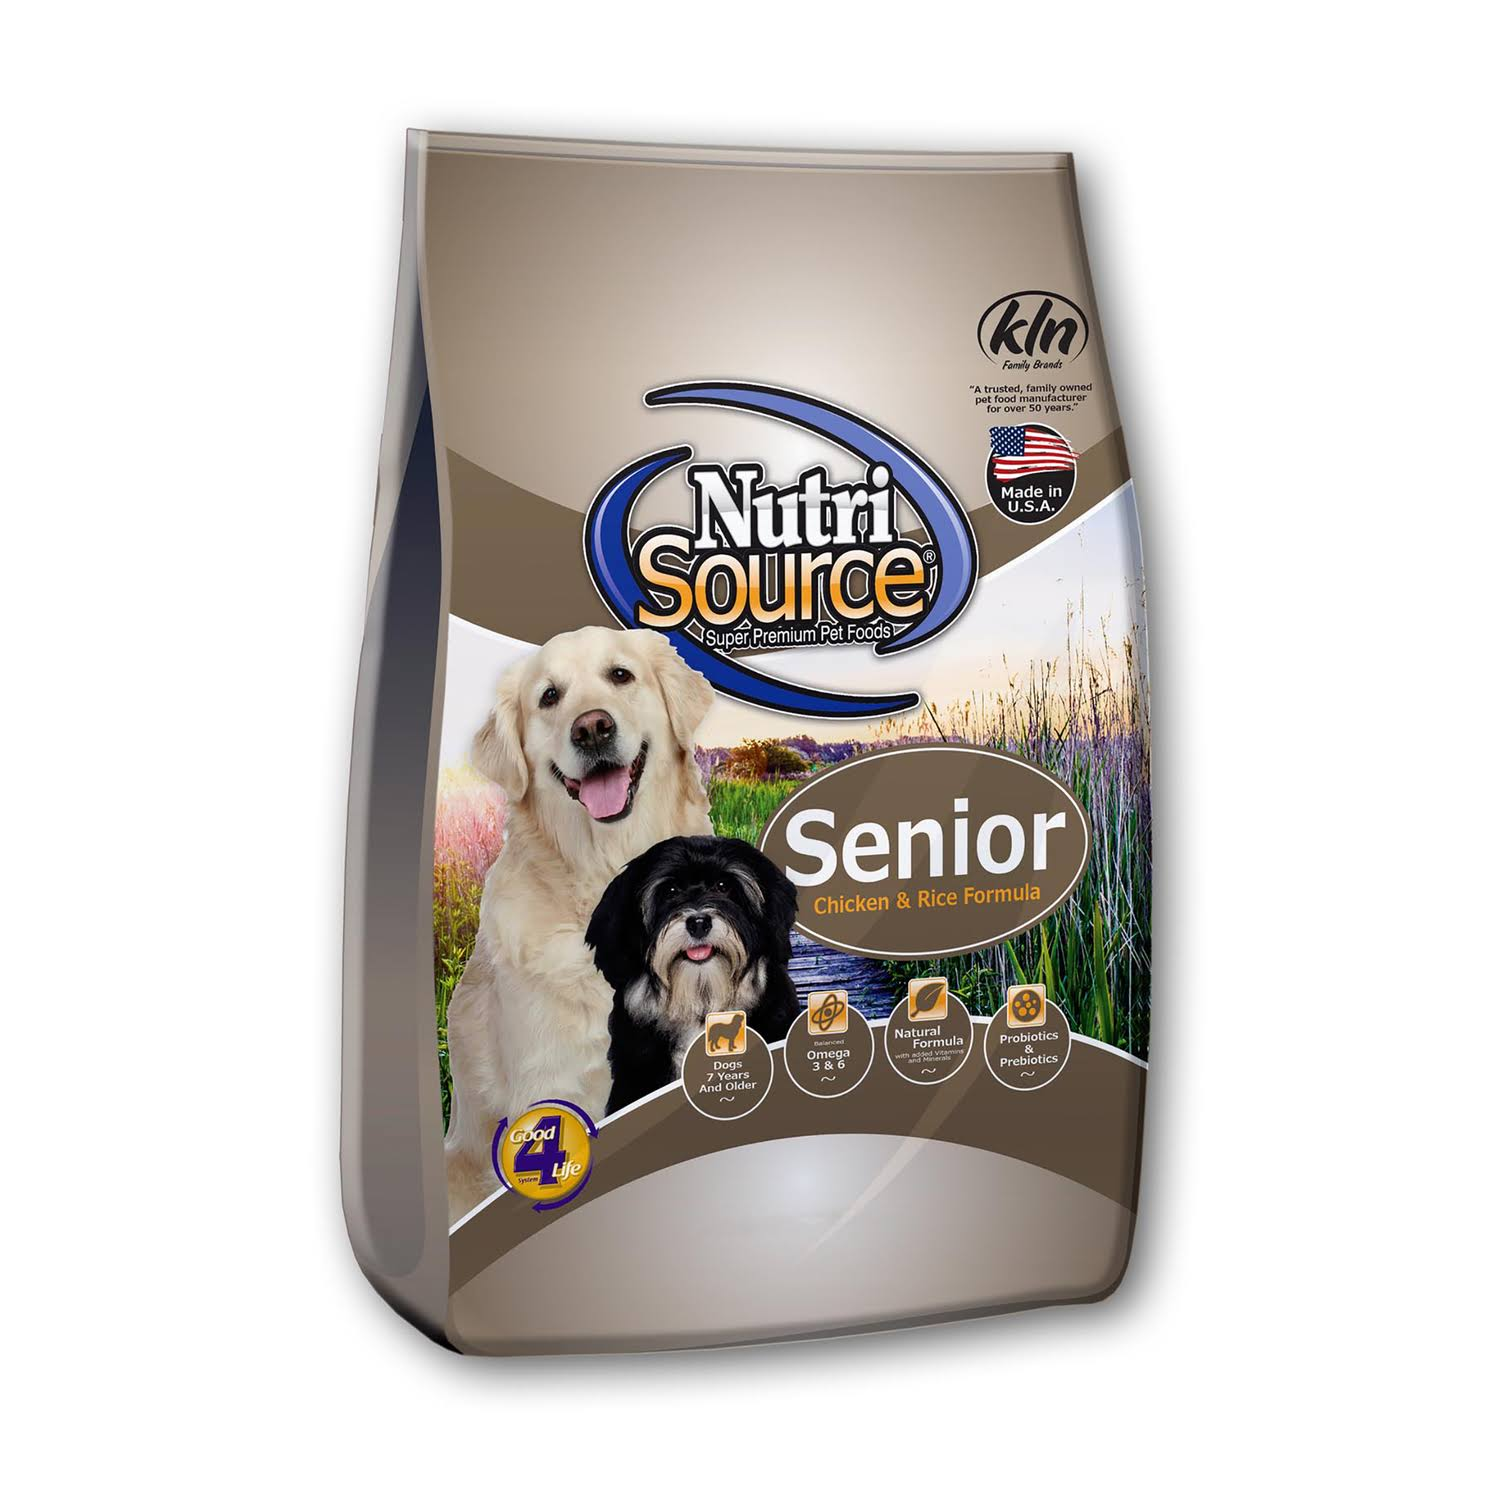 NutriSource Chicken and Rice Senior Dog Food 5 lb.